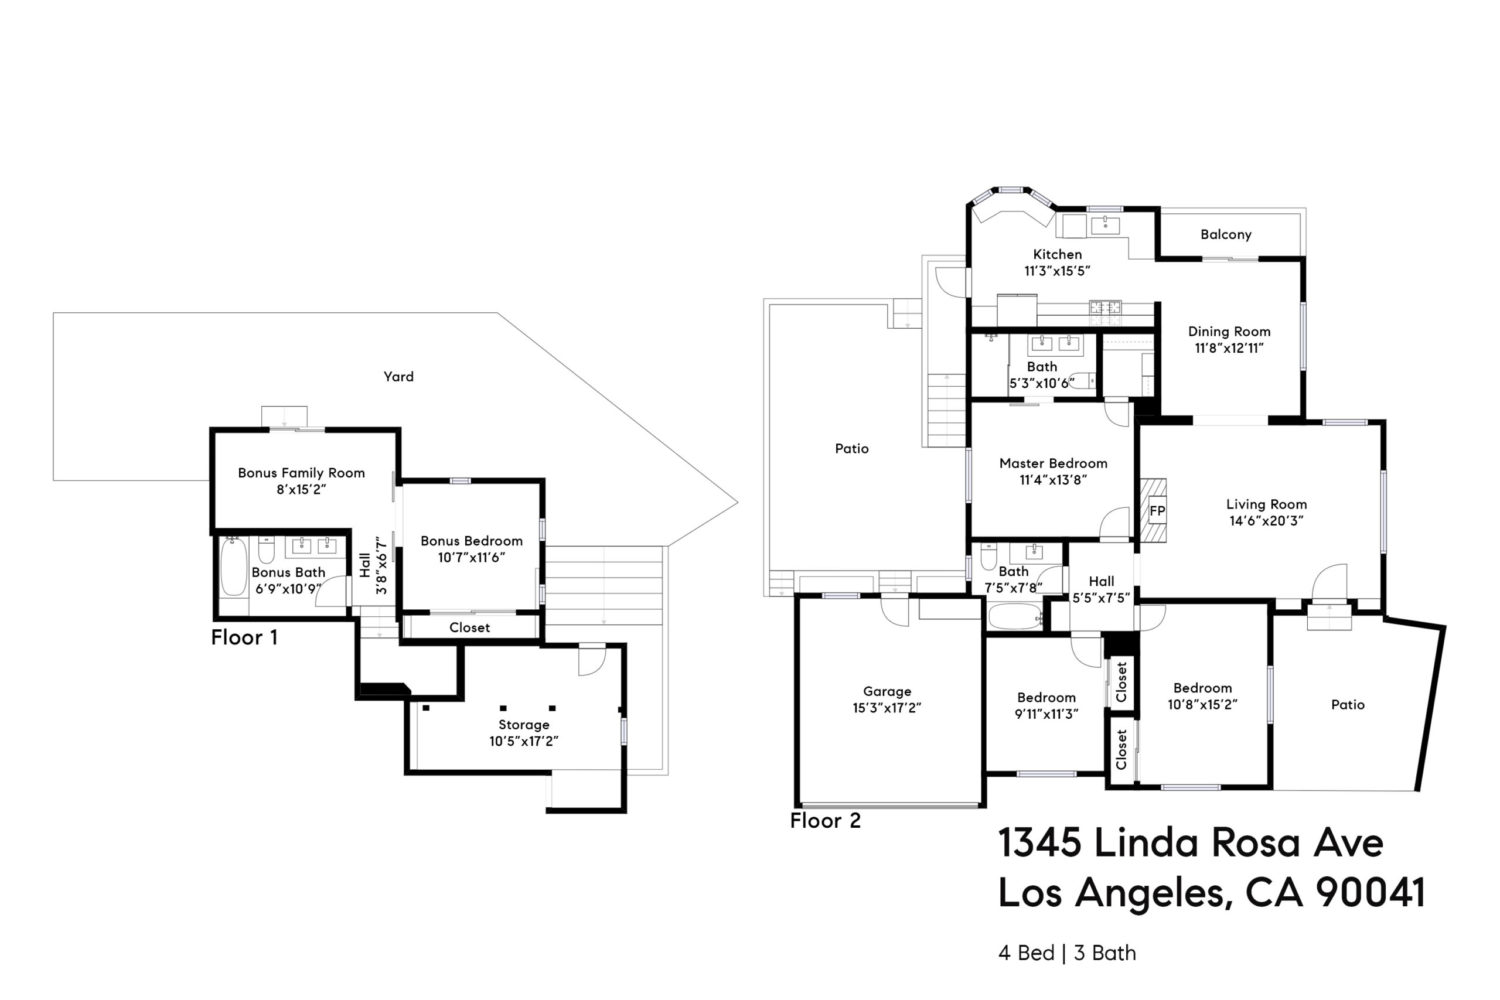 Floorplan_Example2